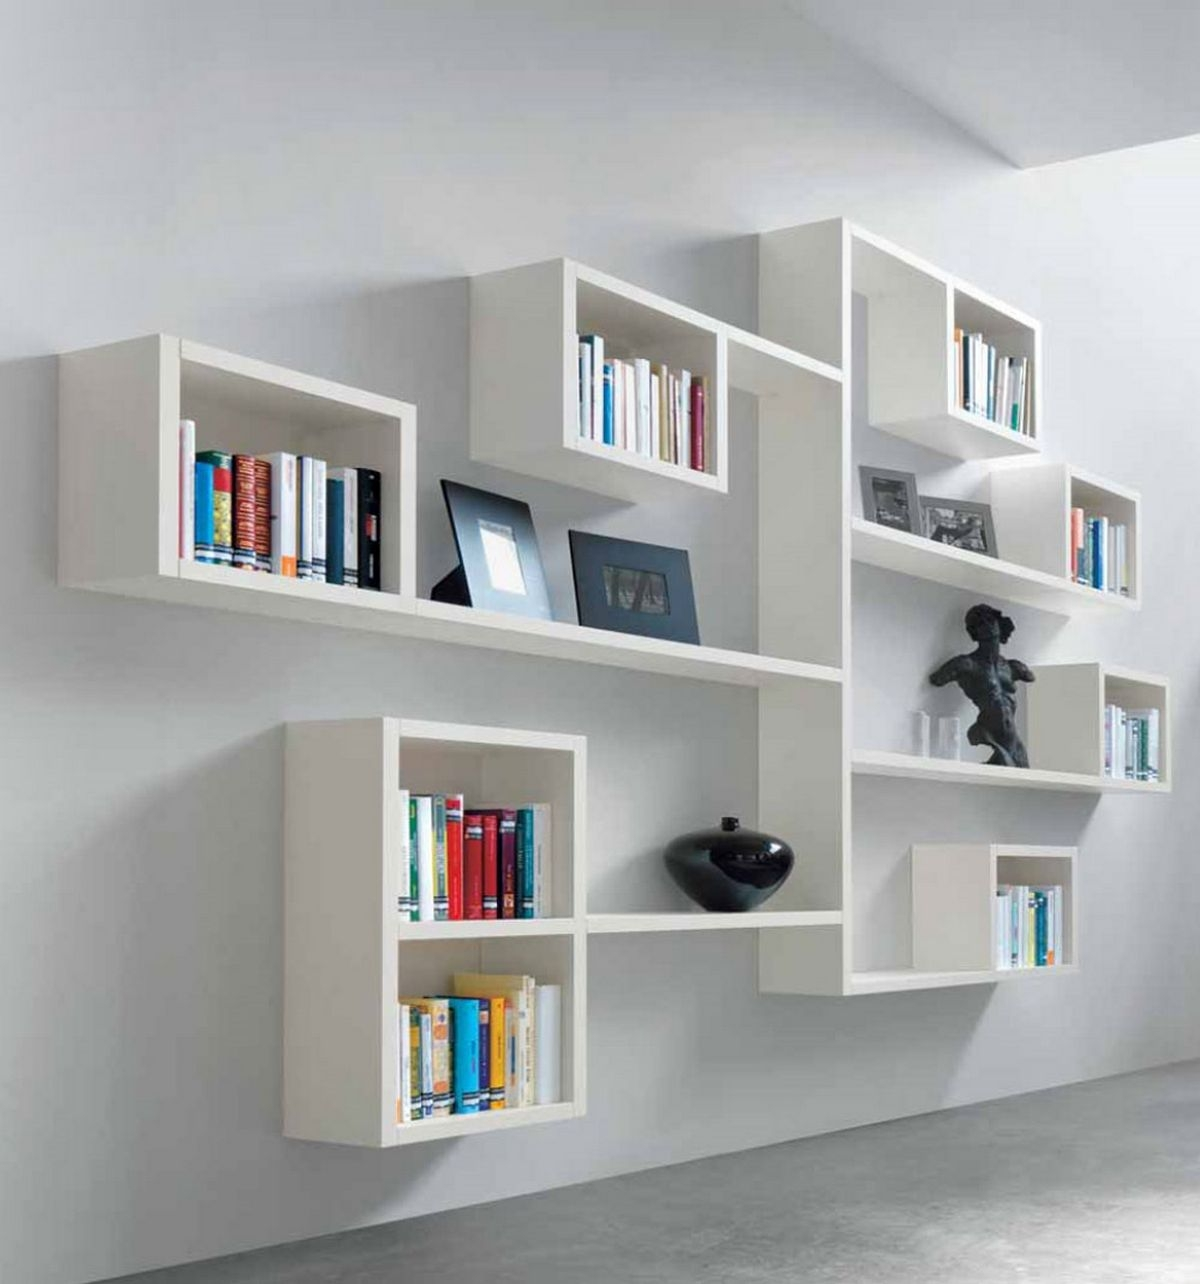 26 Of The Most Creative Bookshelves Designs Minimalist Book Regarding Bookshelves Designs For Home (View 2 of 15)